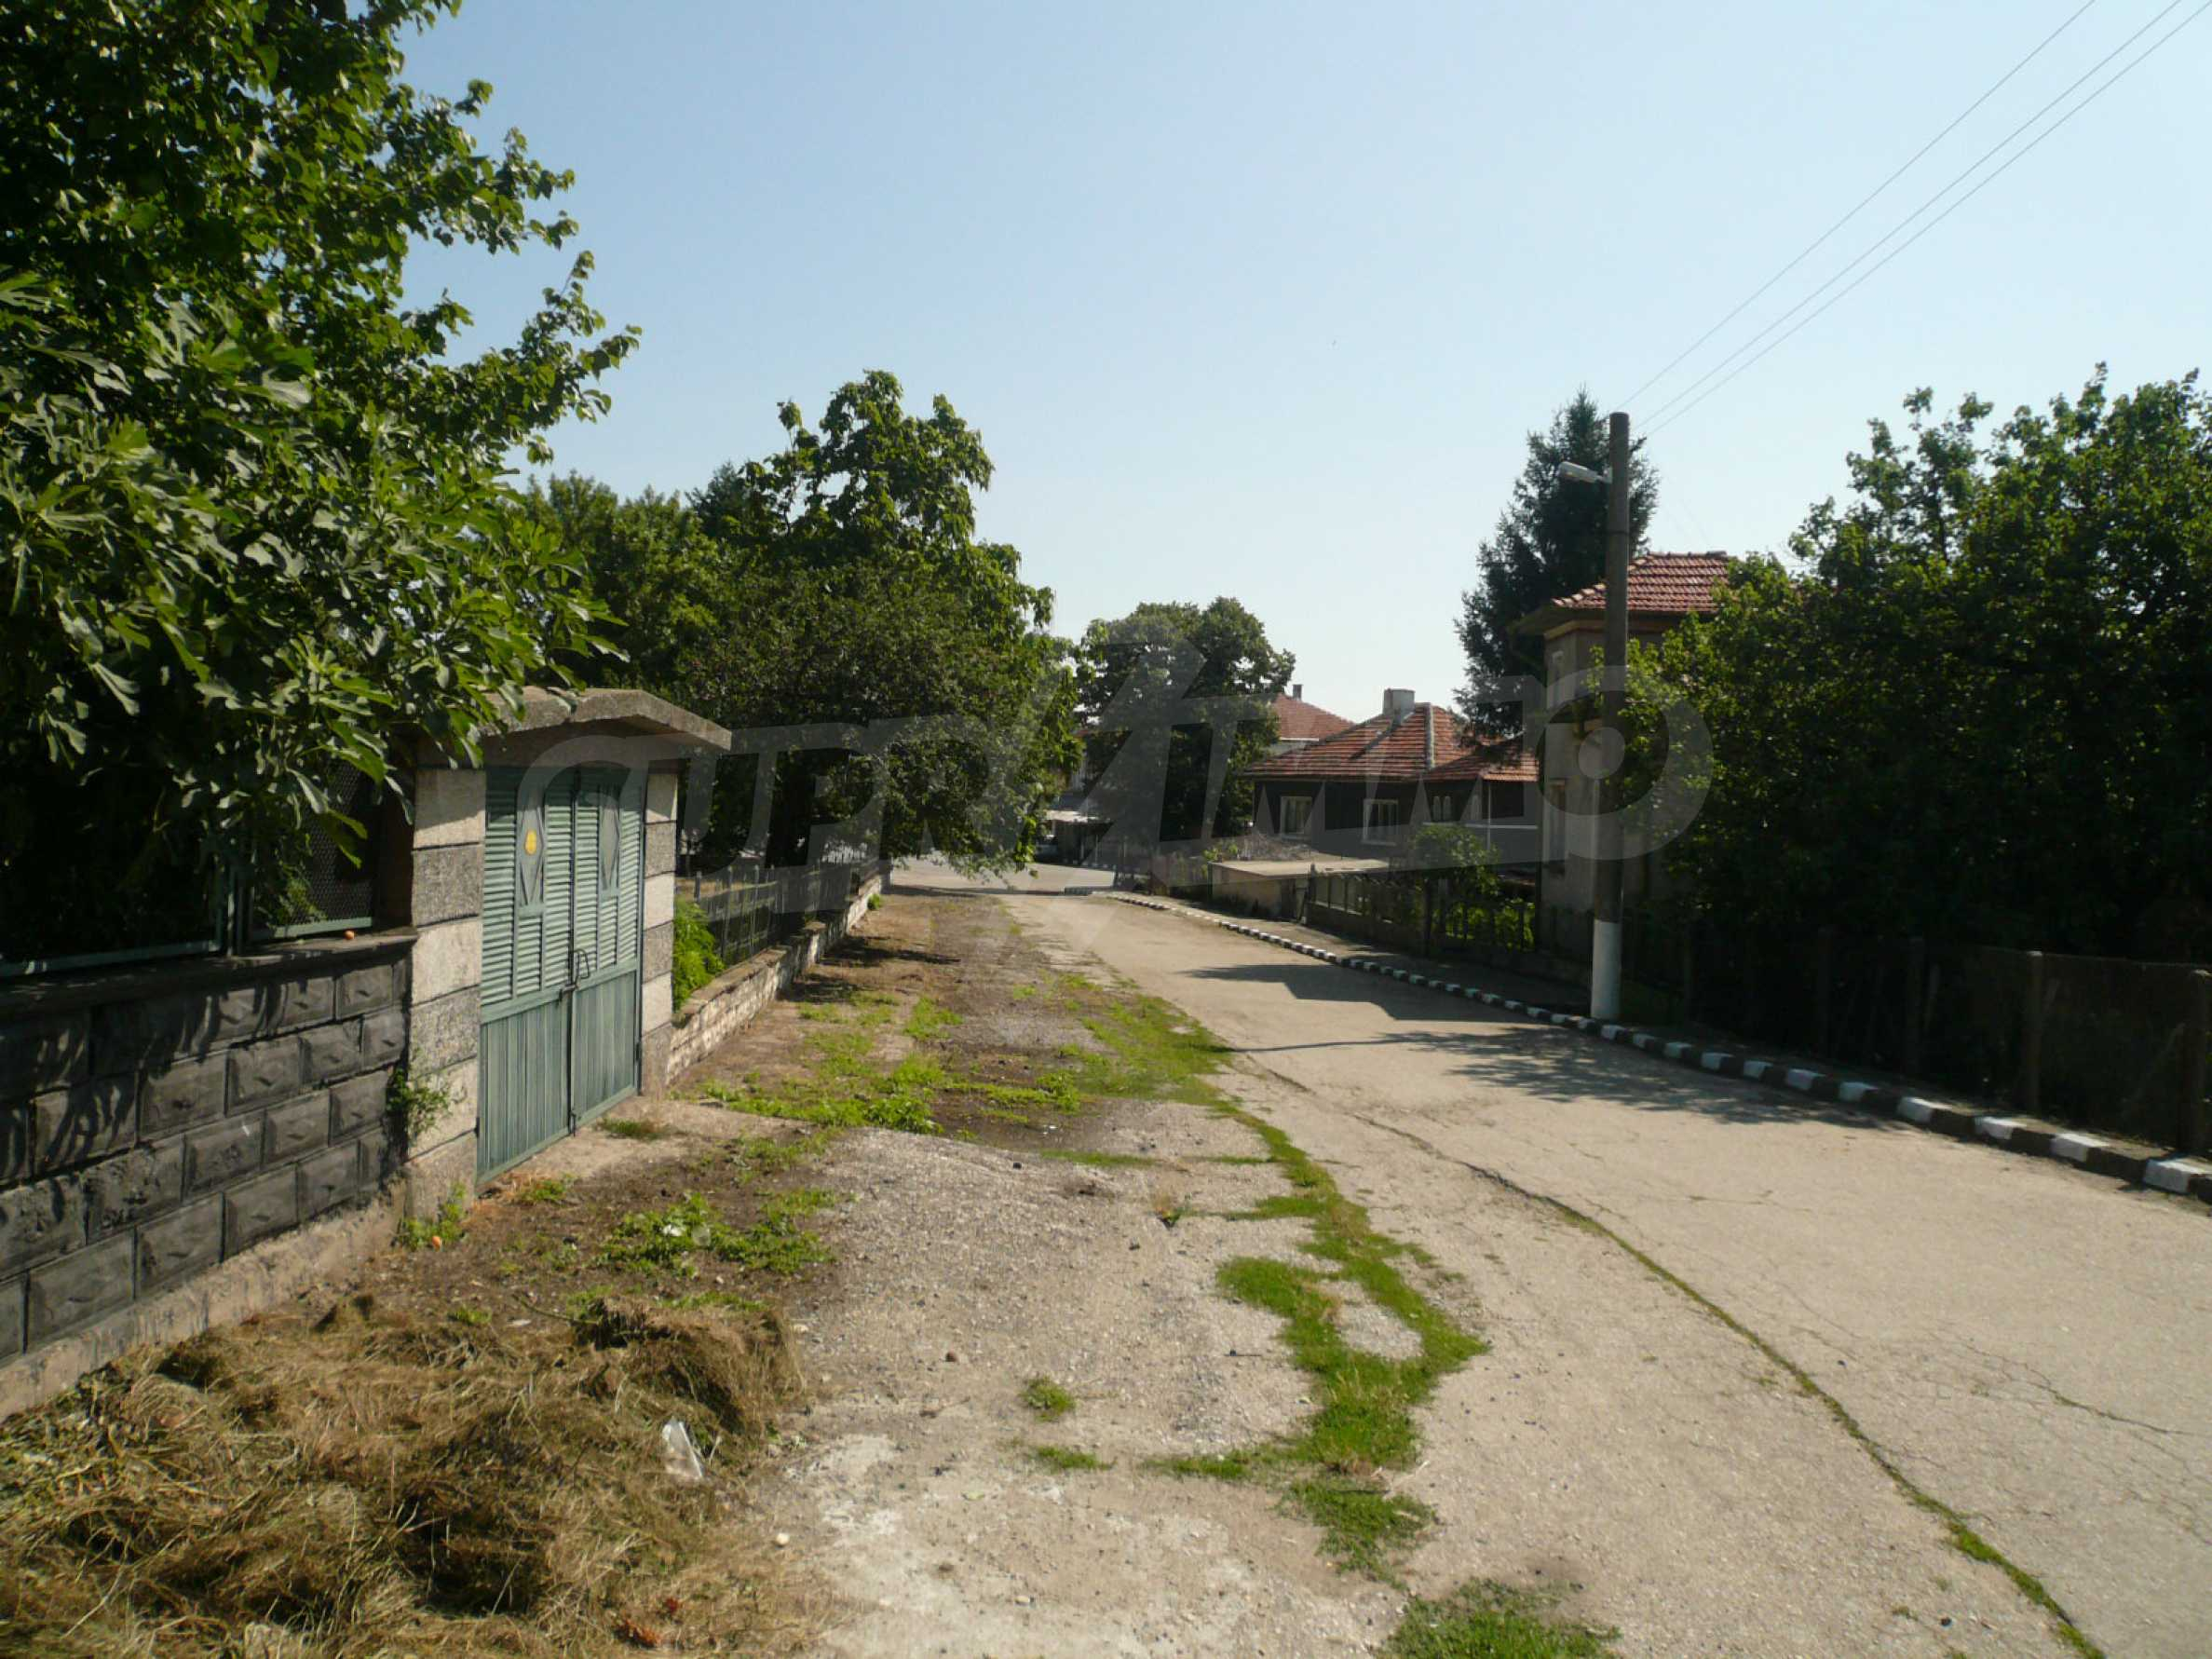 Rural houses with garden 12 km from Vidin 23